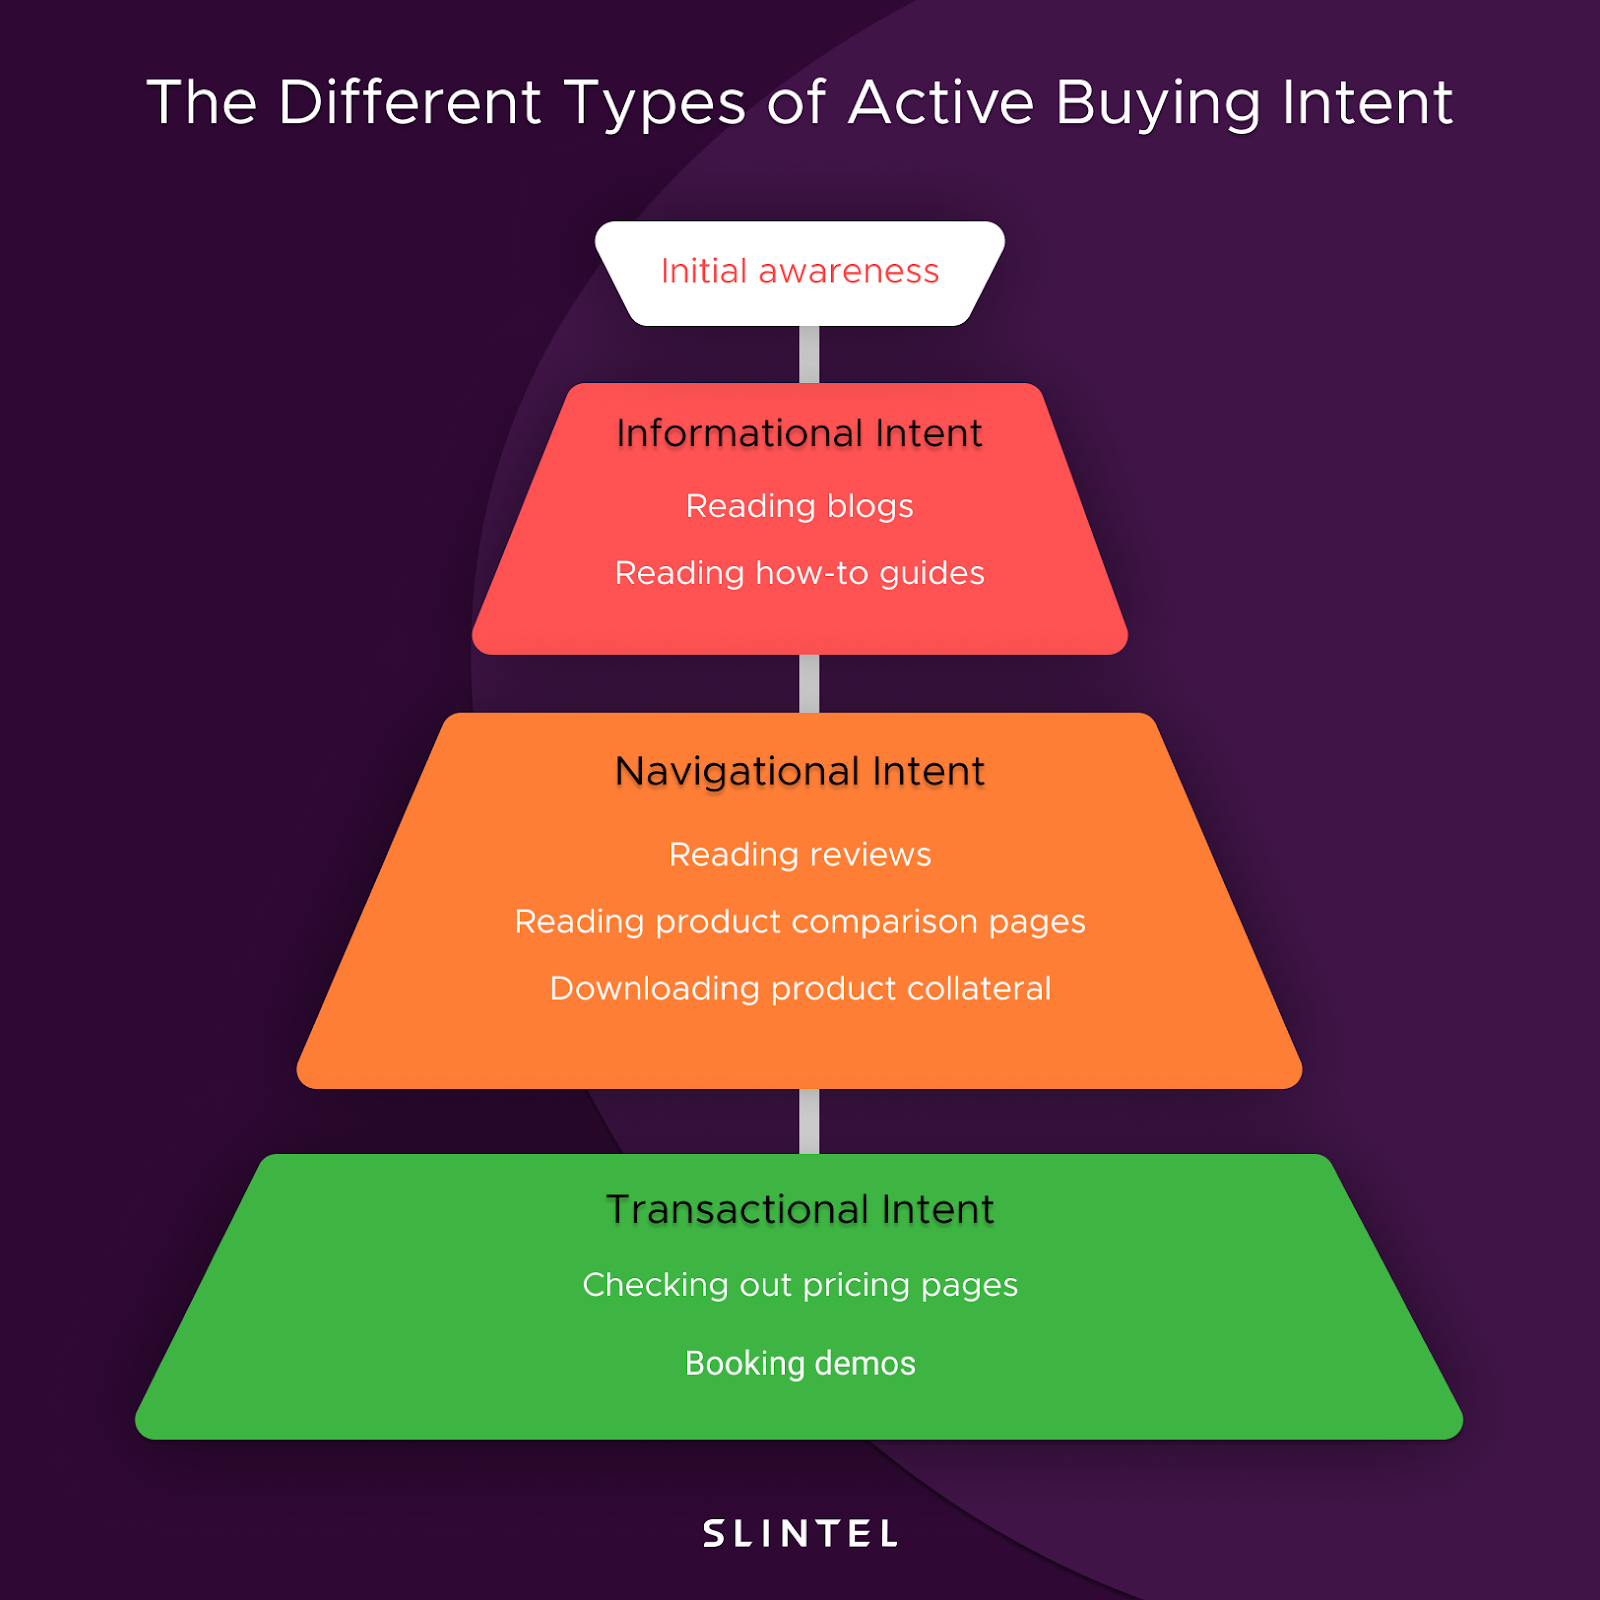 The different types of active buying intent